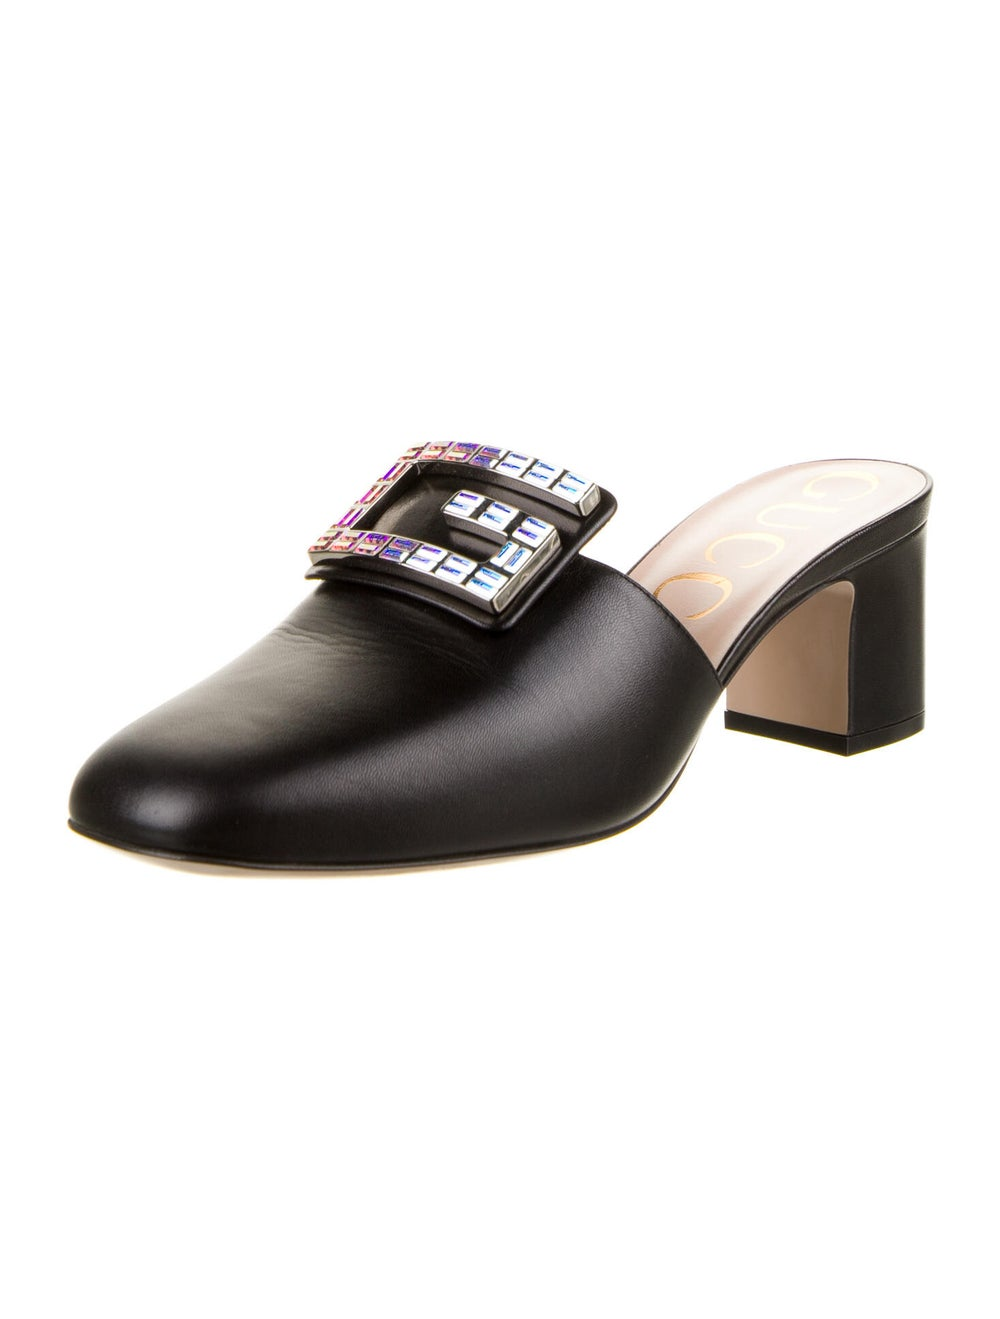 Gucci Leather Crystal Embellishments Mules Black - image 2